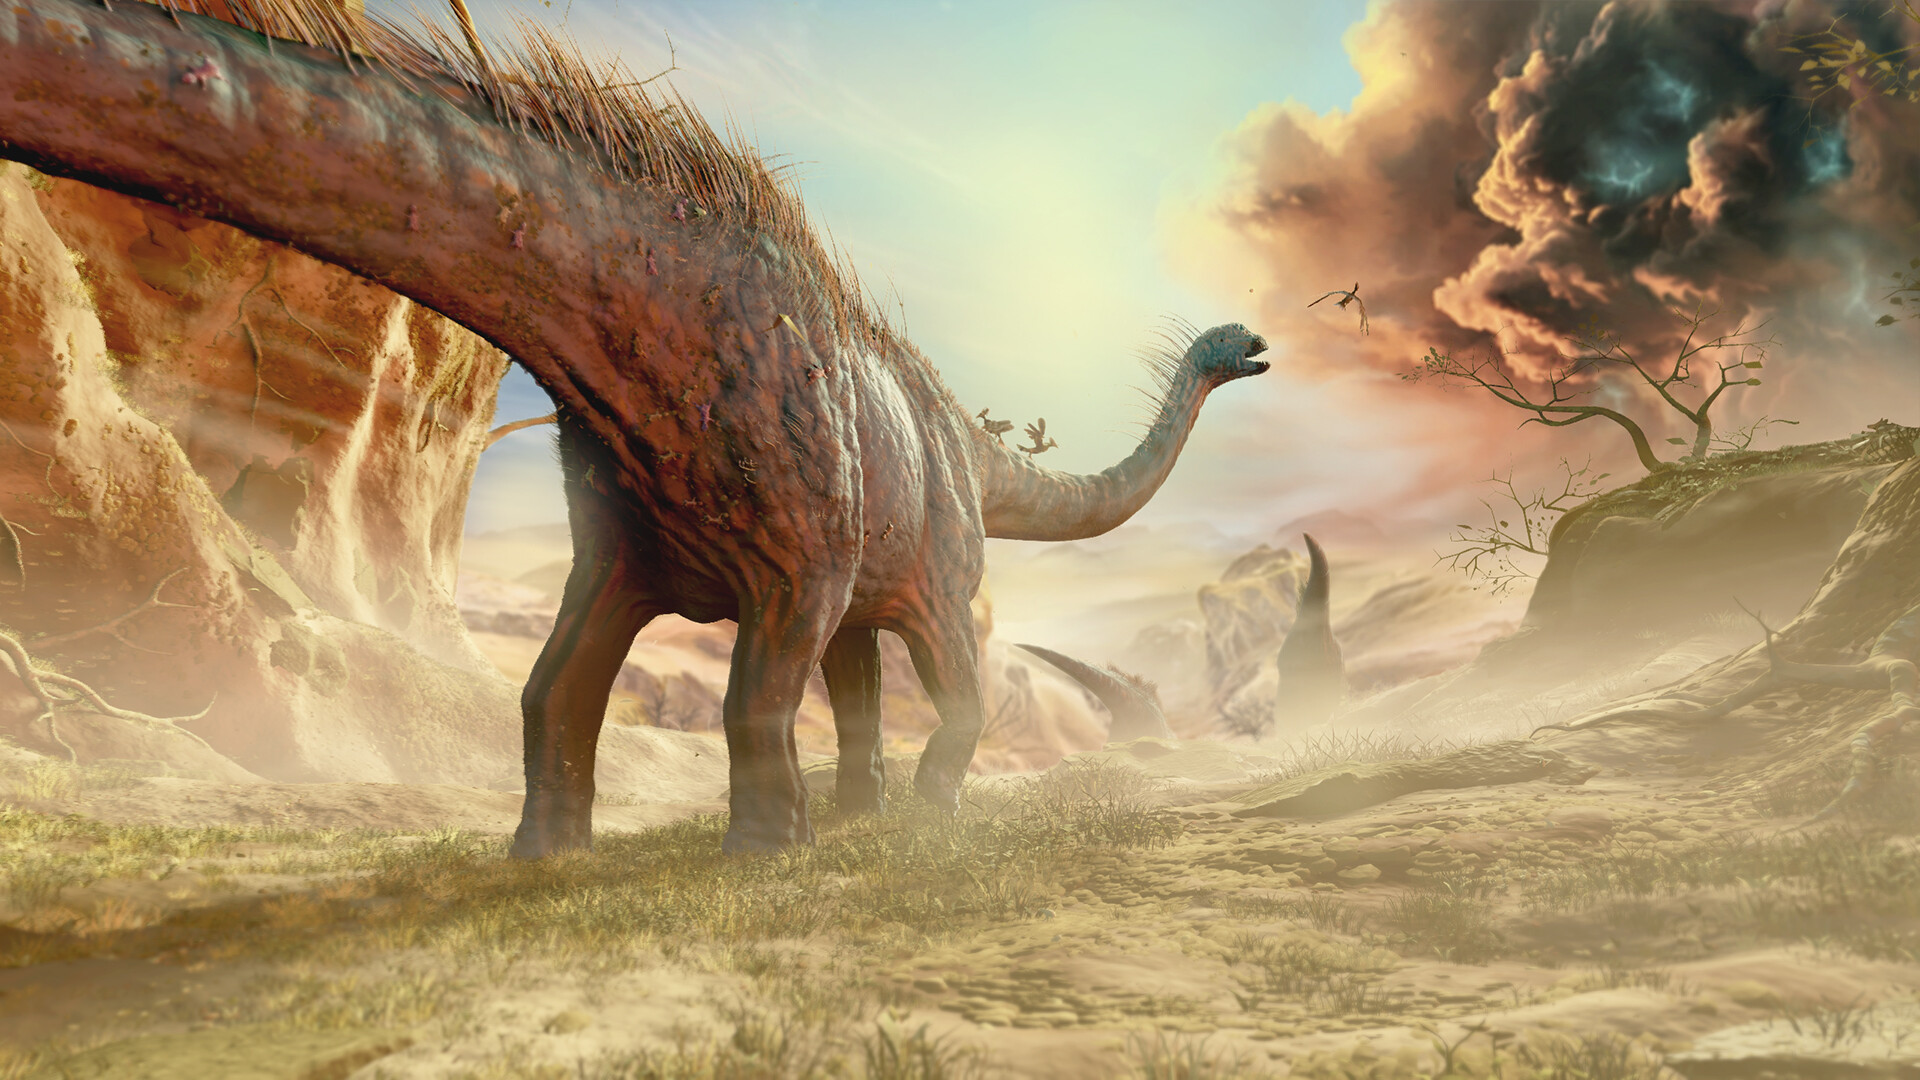 Dinosaur Animation - Last journey together by Unknown Dino